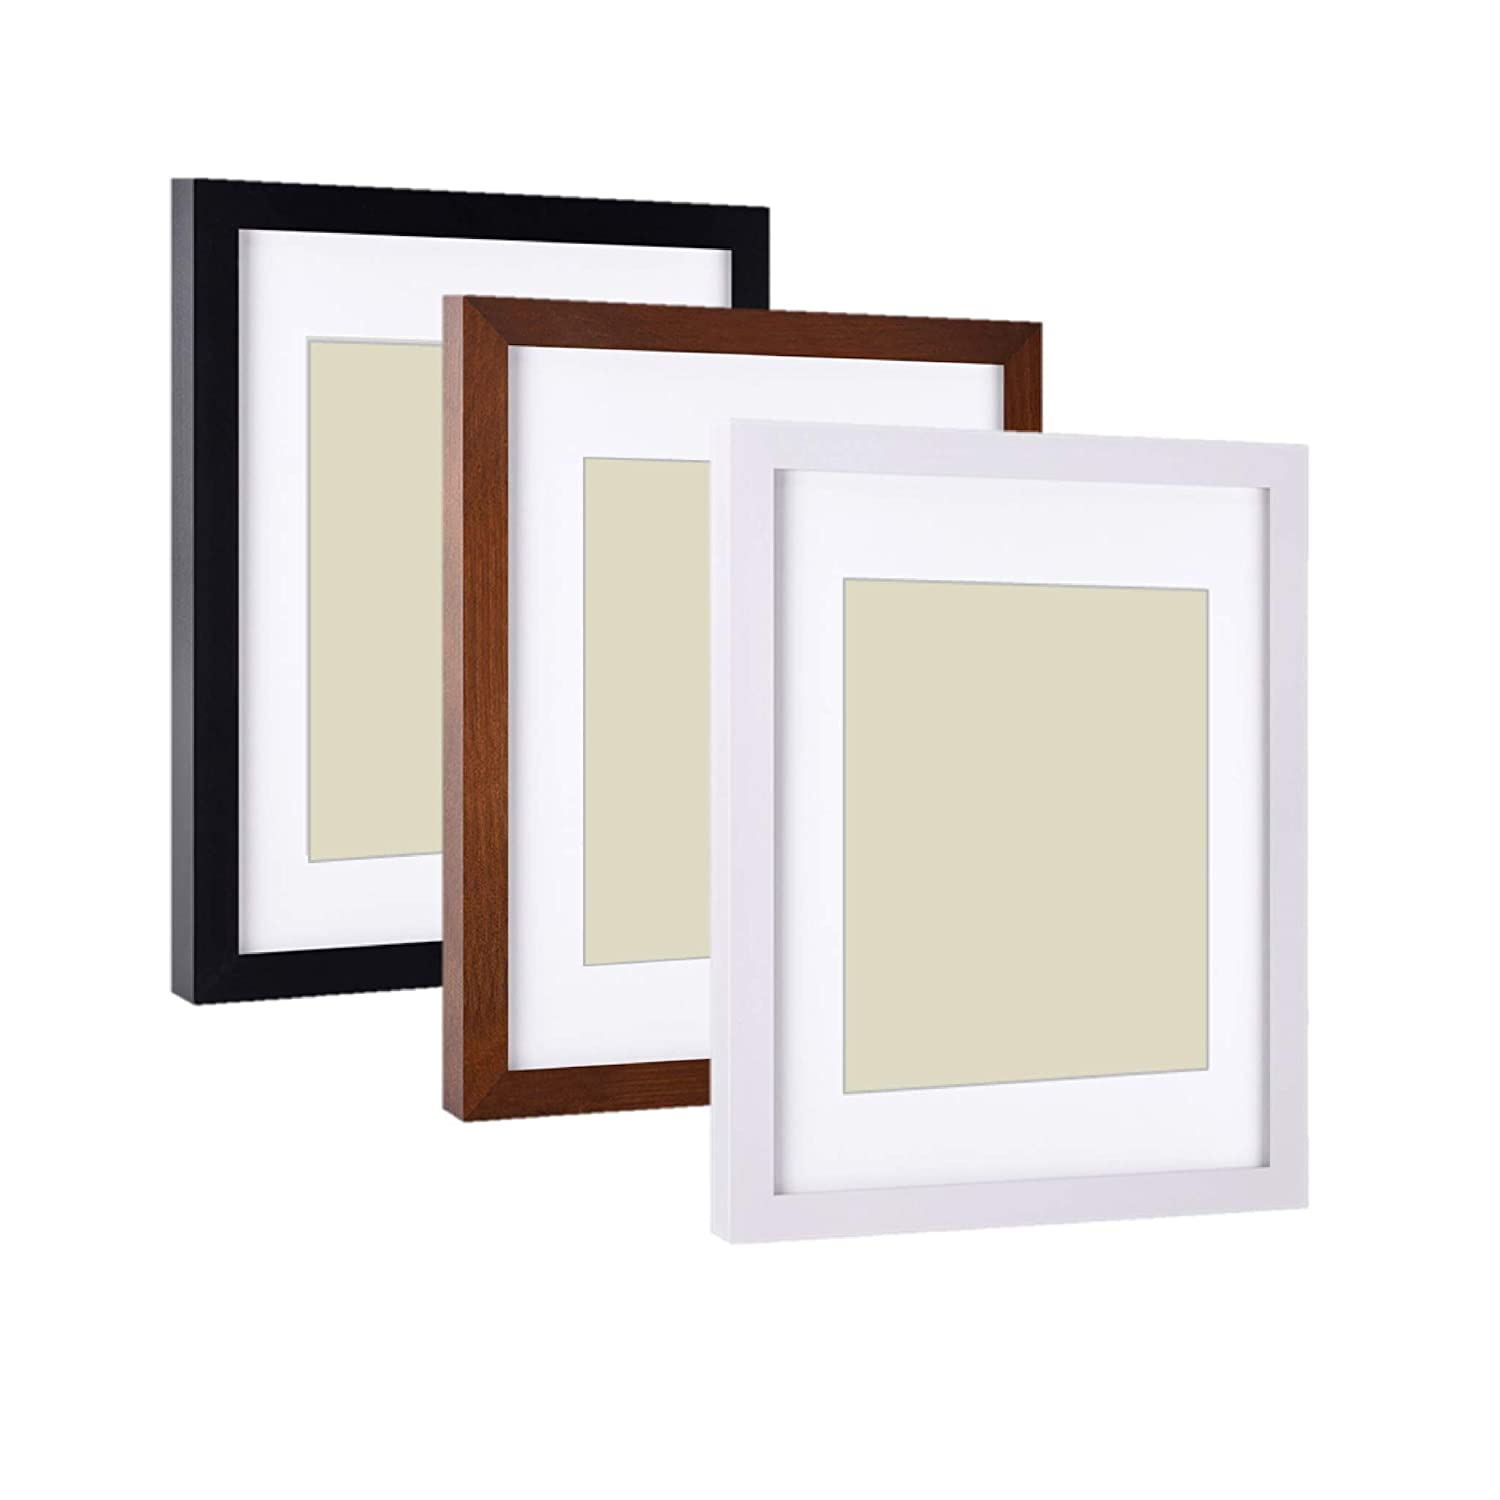 4 x 4 Frames Picture Frames Picture Frame 4 x 4 Poster Custom Picture Frames Brown, 4 x 4 4 x 4 Frame ModernMemoryArt 4 x 4 Picture Frames Black Picture Frame